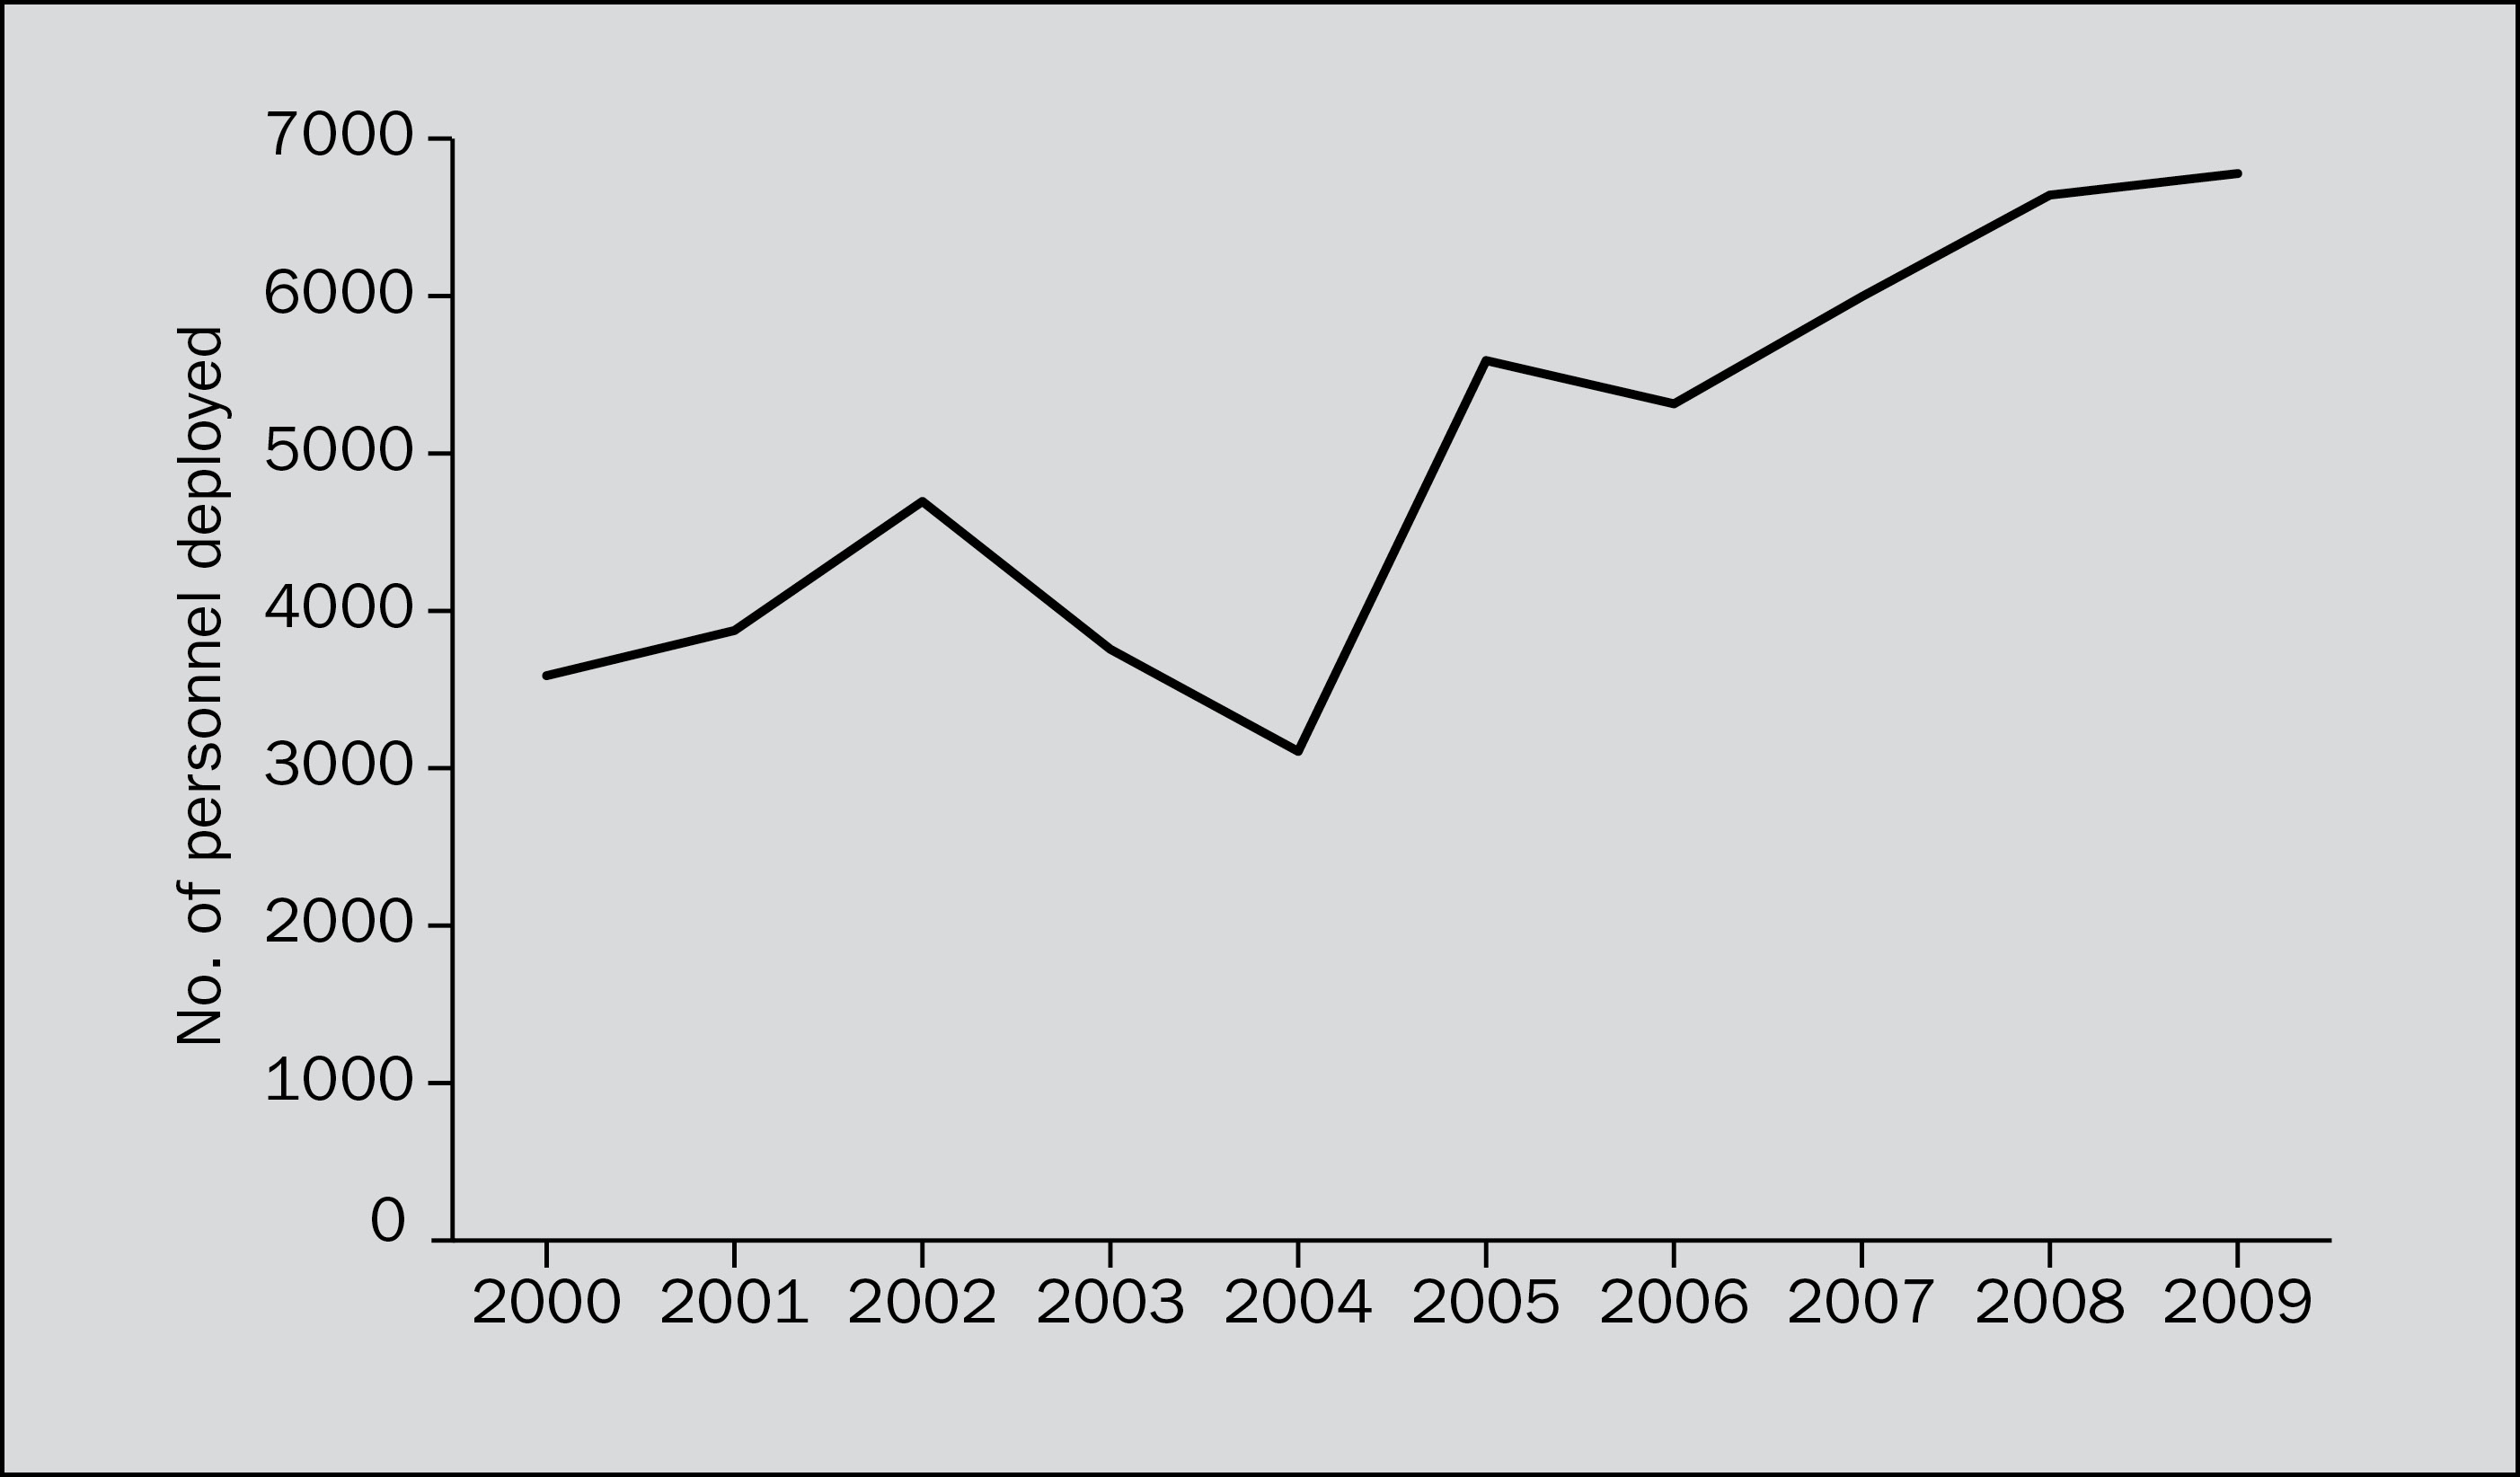 Civilians deployed to peace operations, 2000–2009